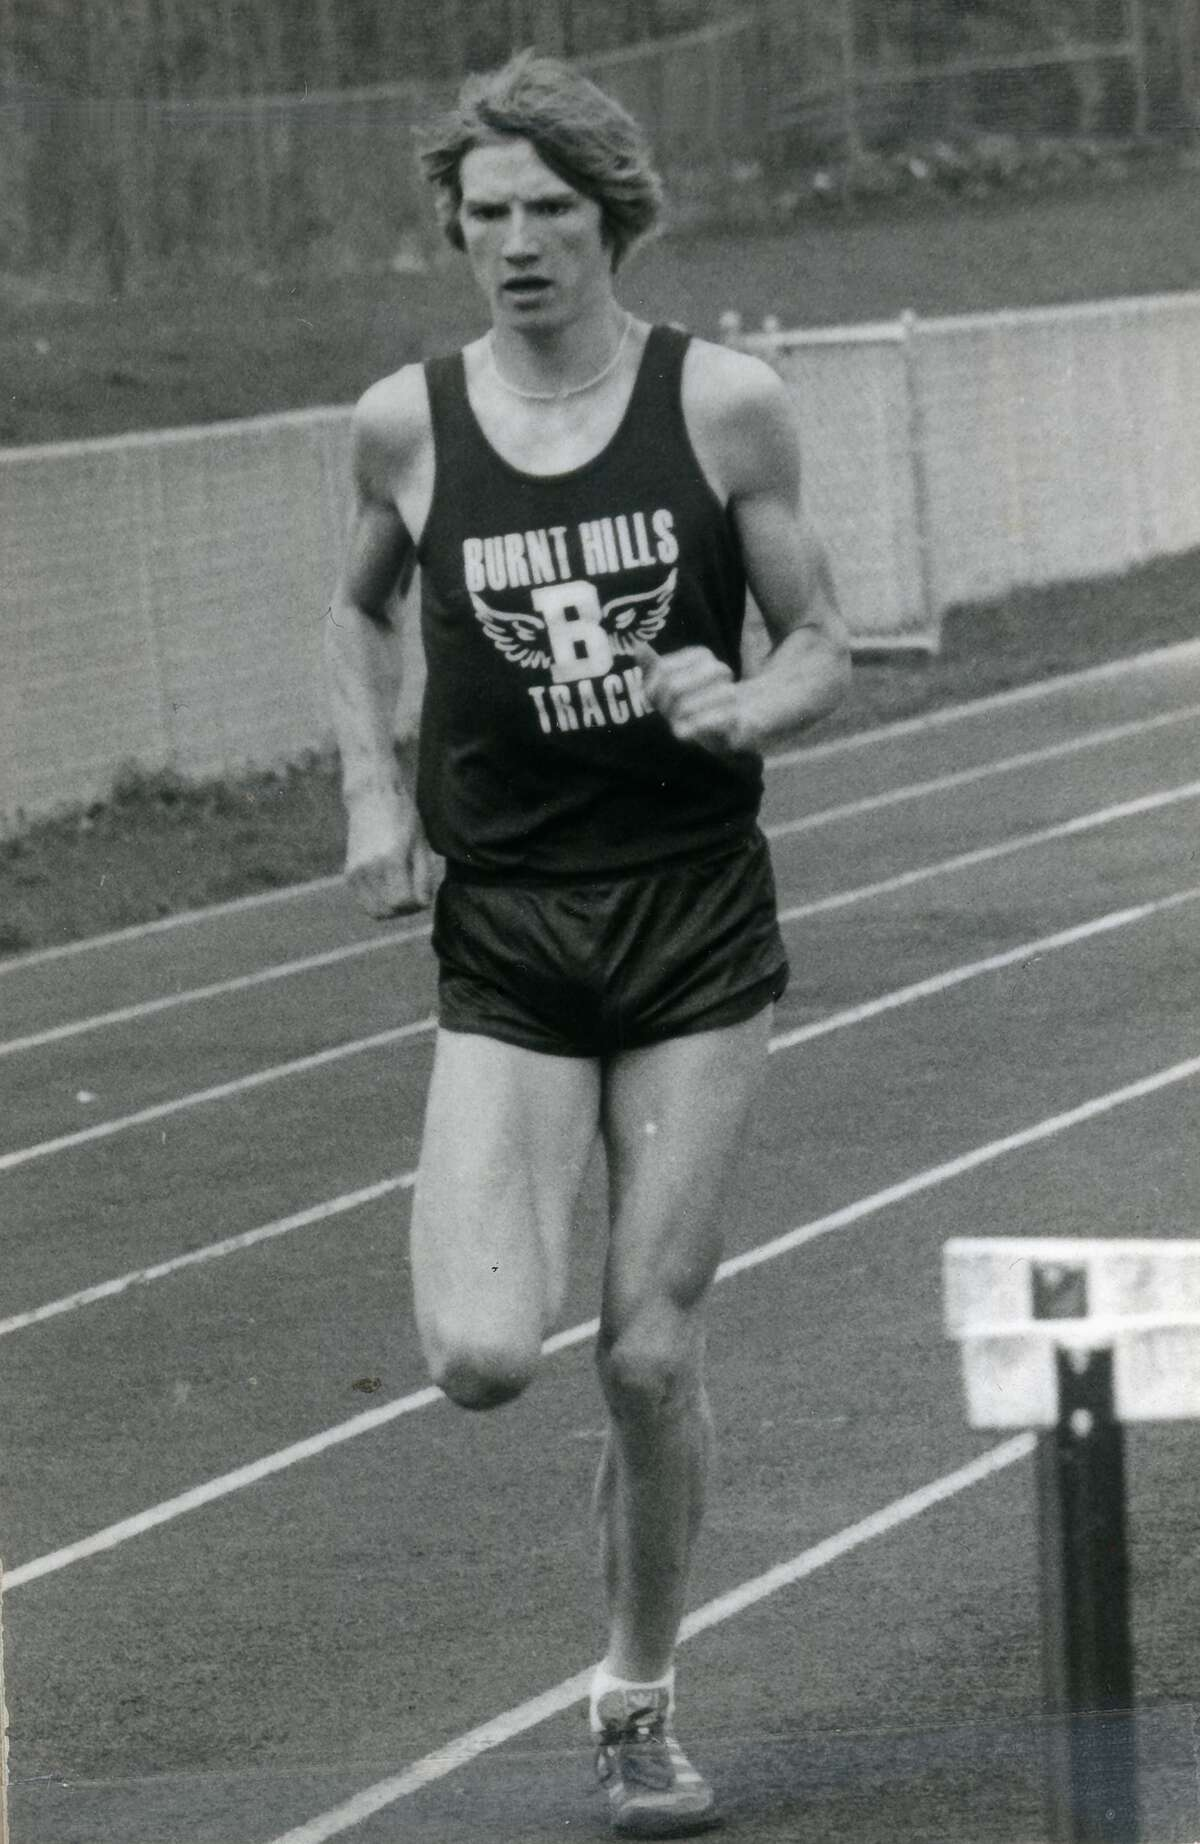 Record-setting runner Miles Irish of Burnt Hills, who is being inducted into the Capital Region Track. Field and Cross Country Hall of Fame. (Courtesy photo)